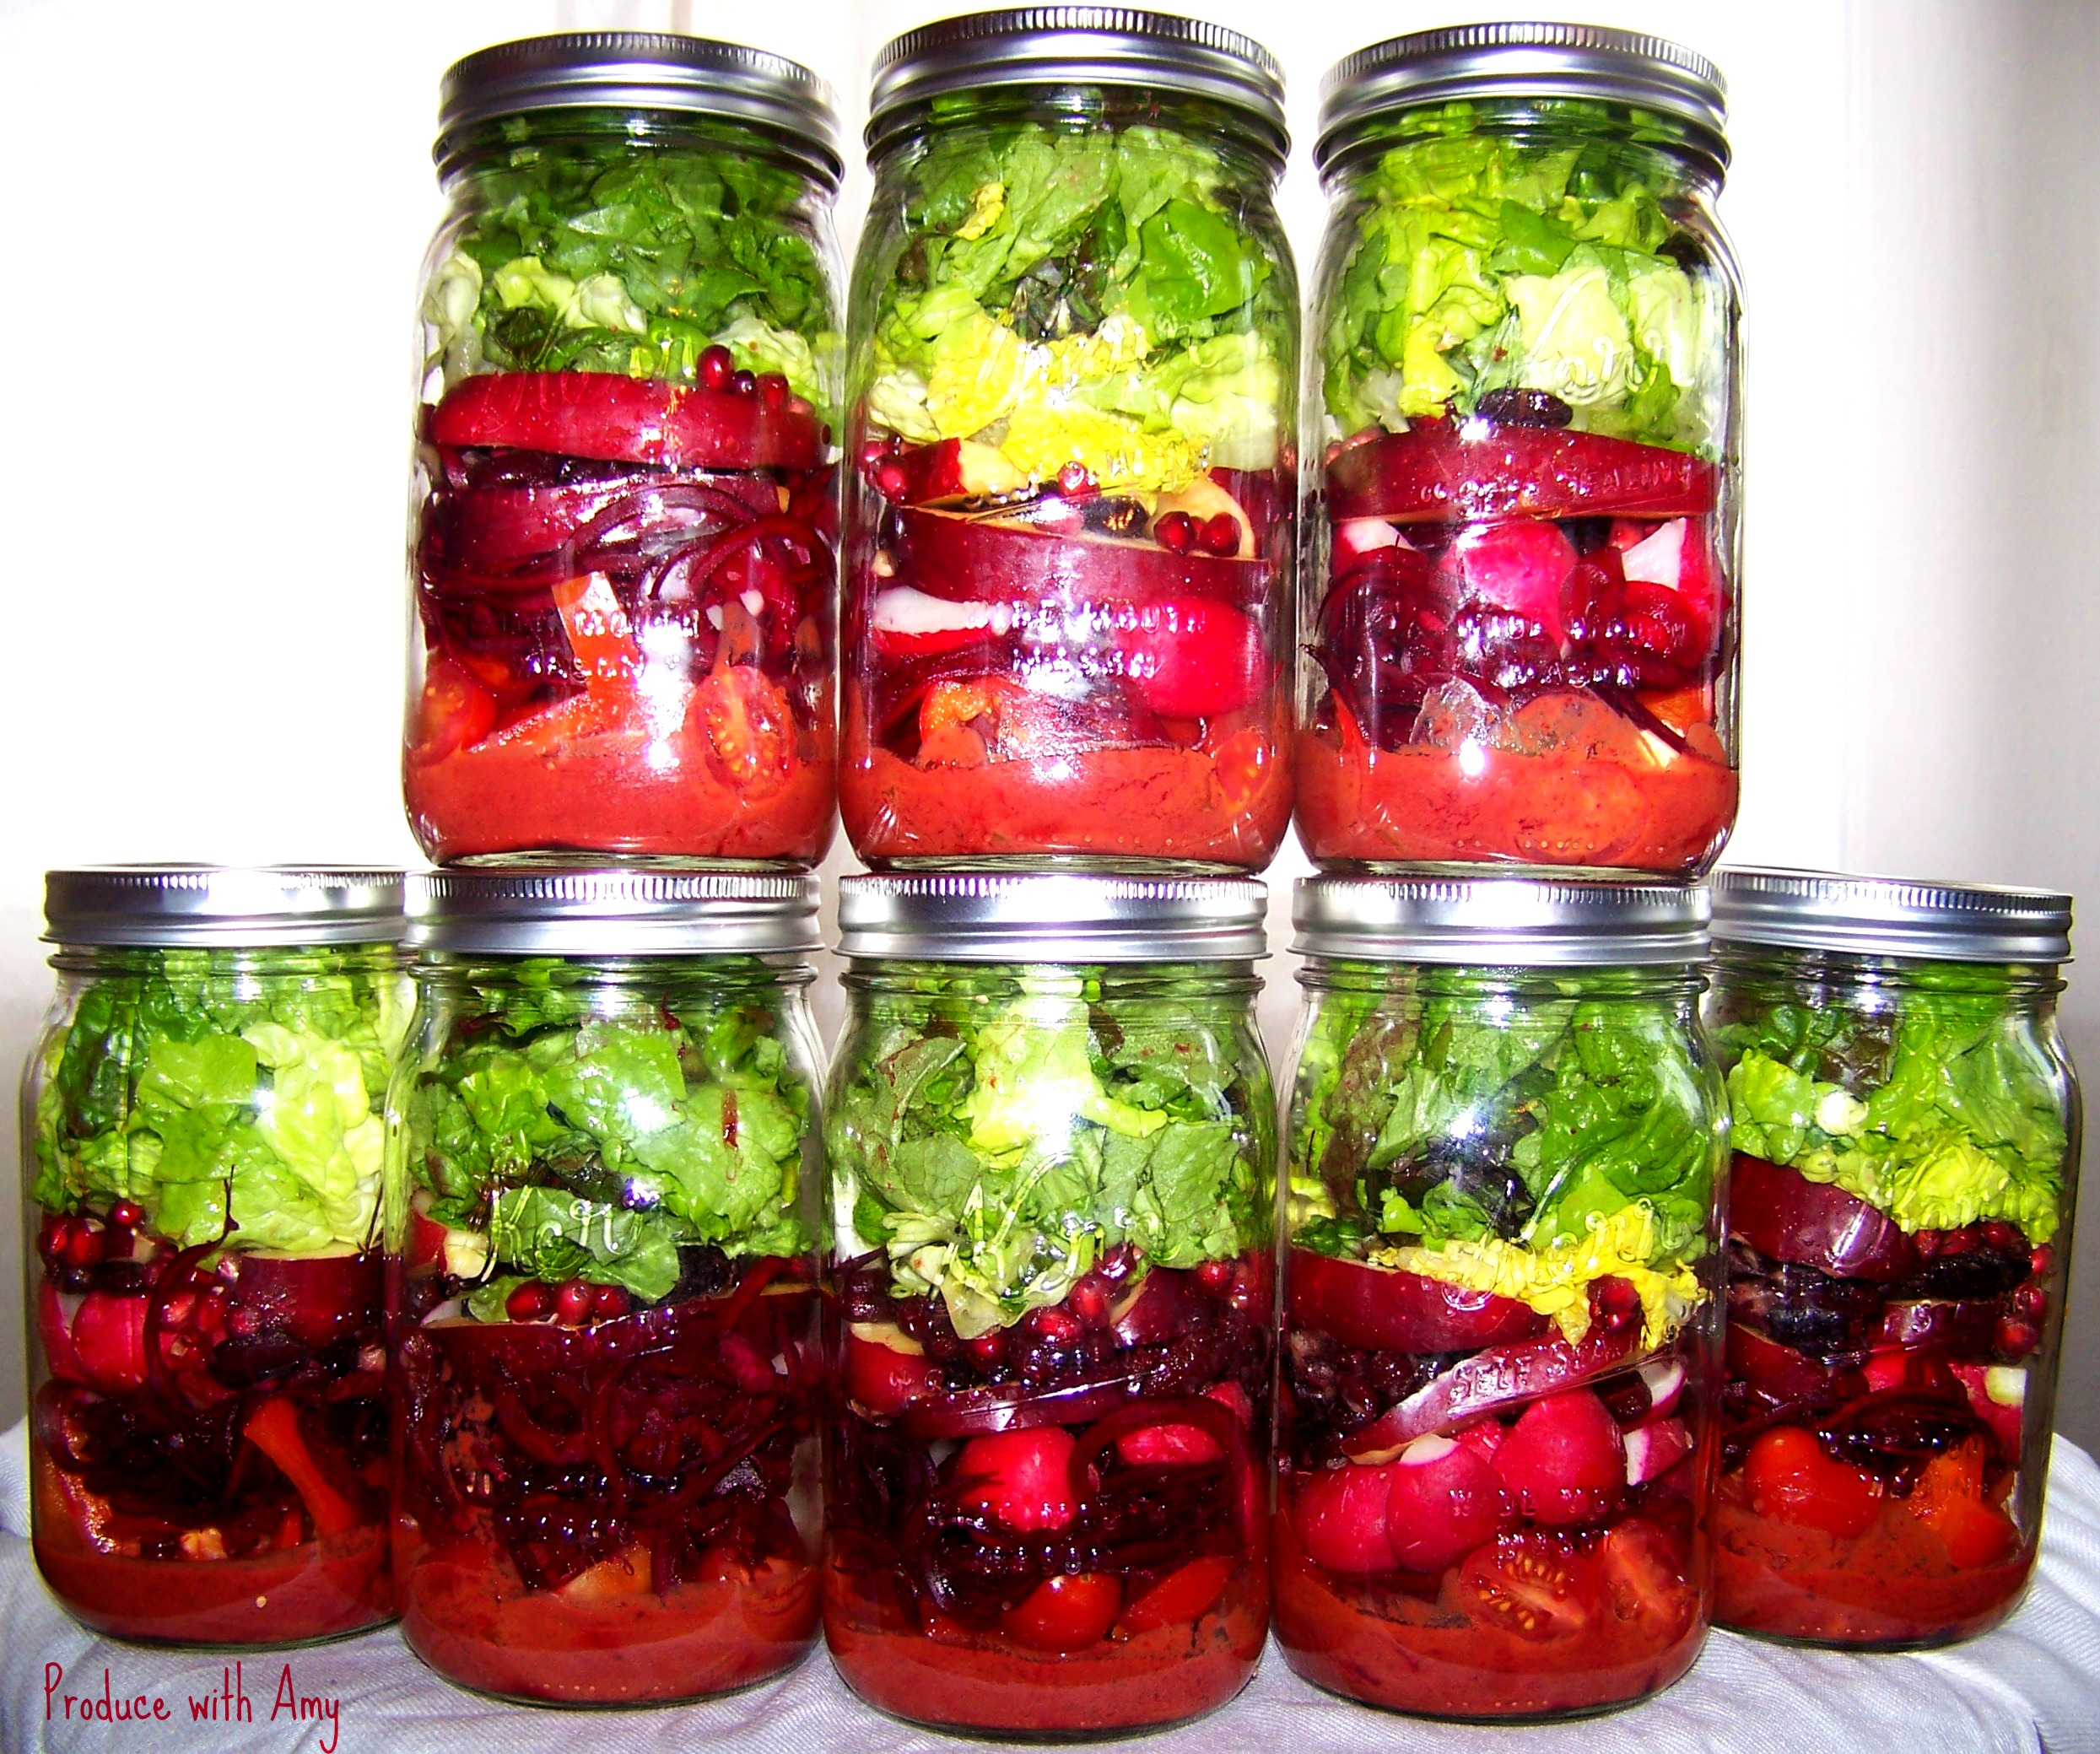 Scarlet Jarred Salads with Cherry Chipotle Vinaigrette